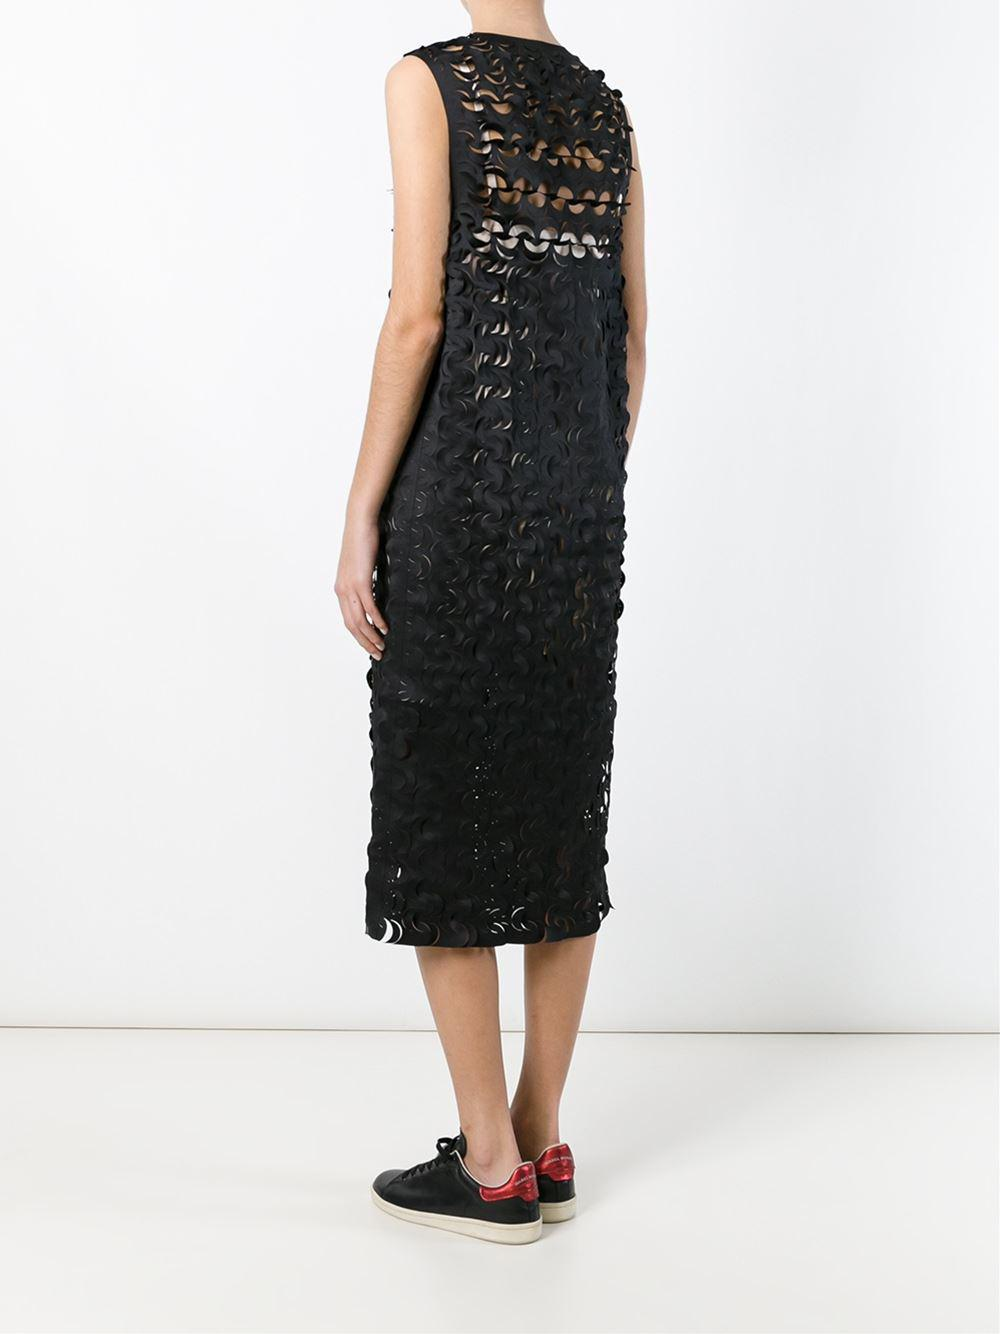 laser cut-out midi dress - Black Paskal 6IalanJZn